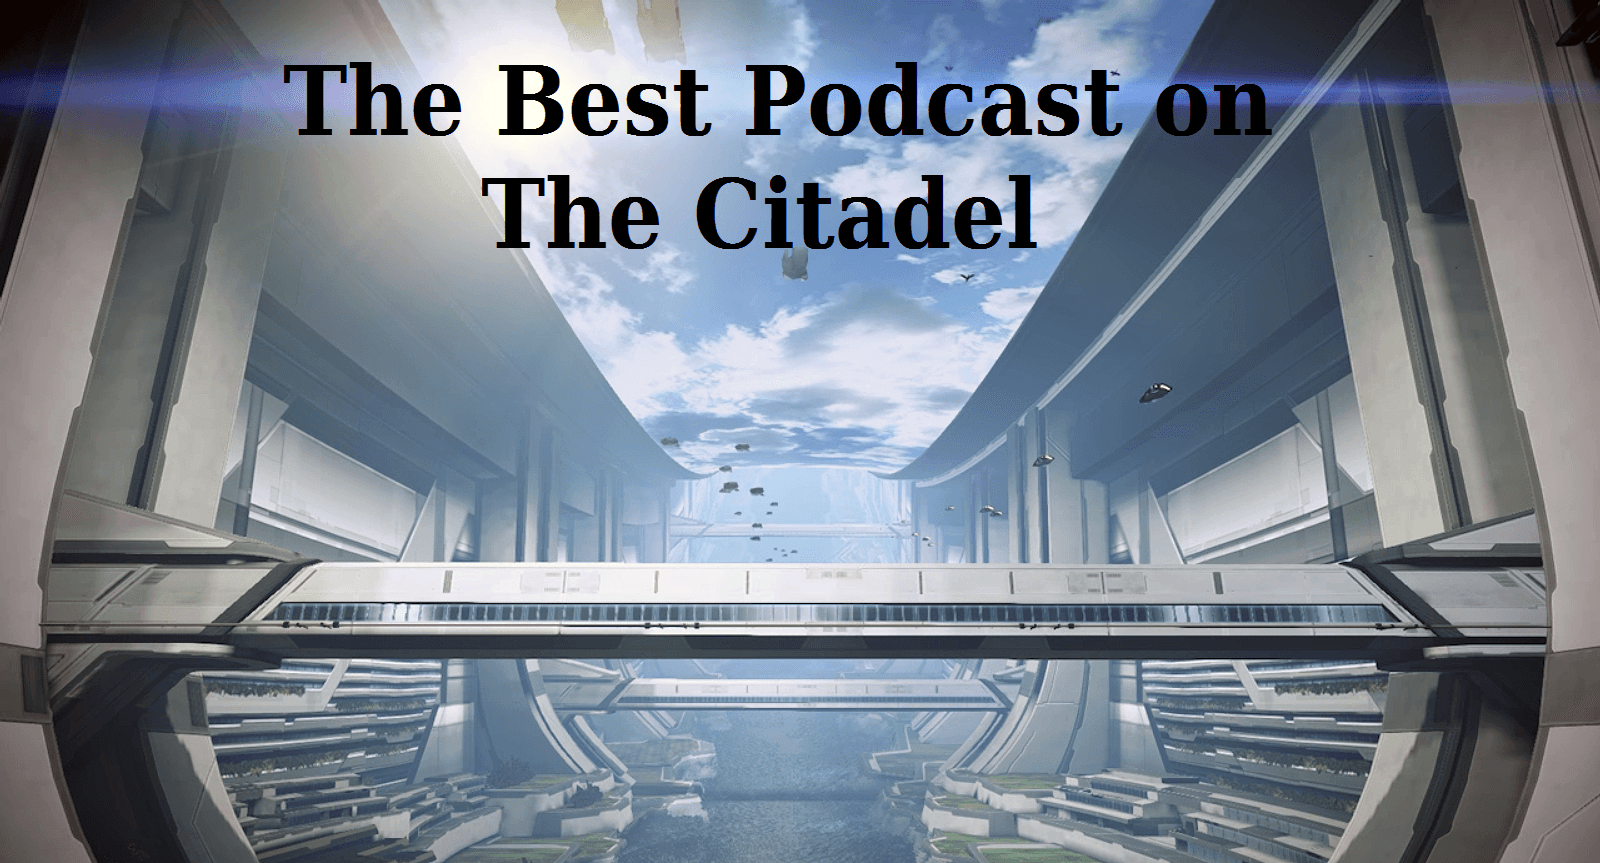 The Best Podcast on the Citadel, Episode 13